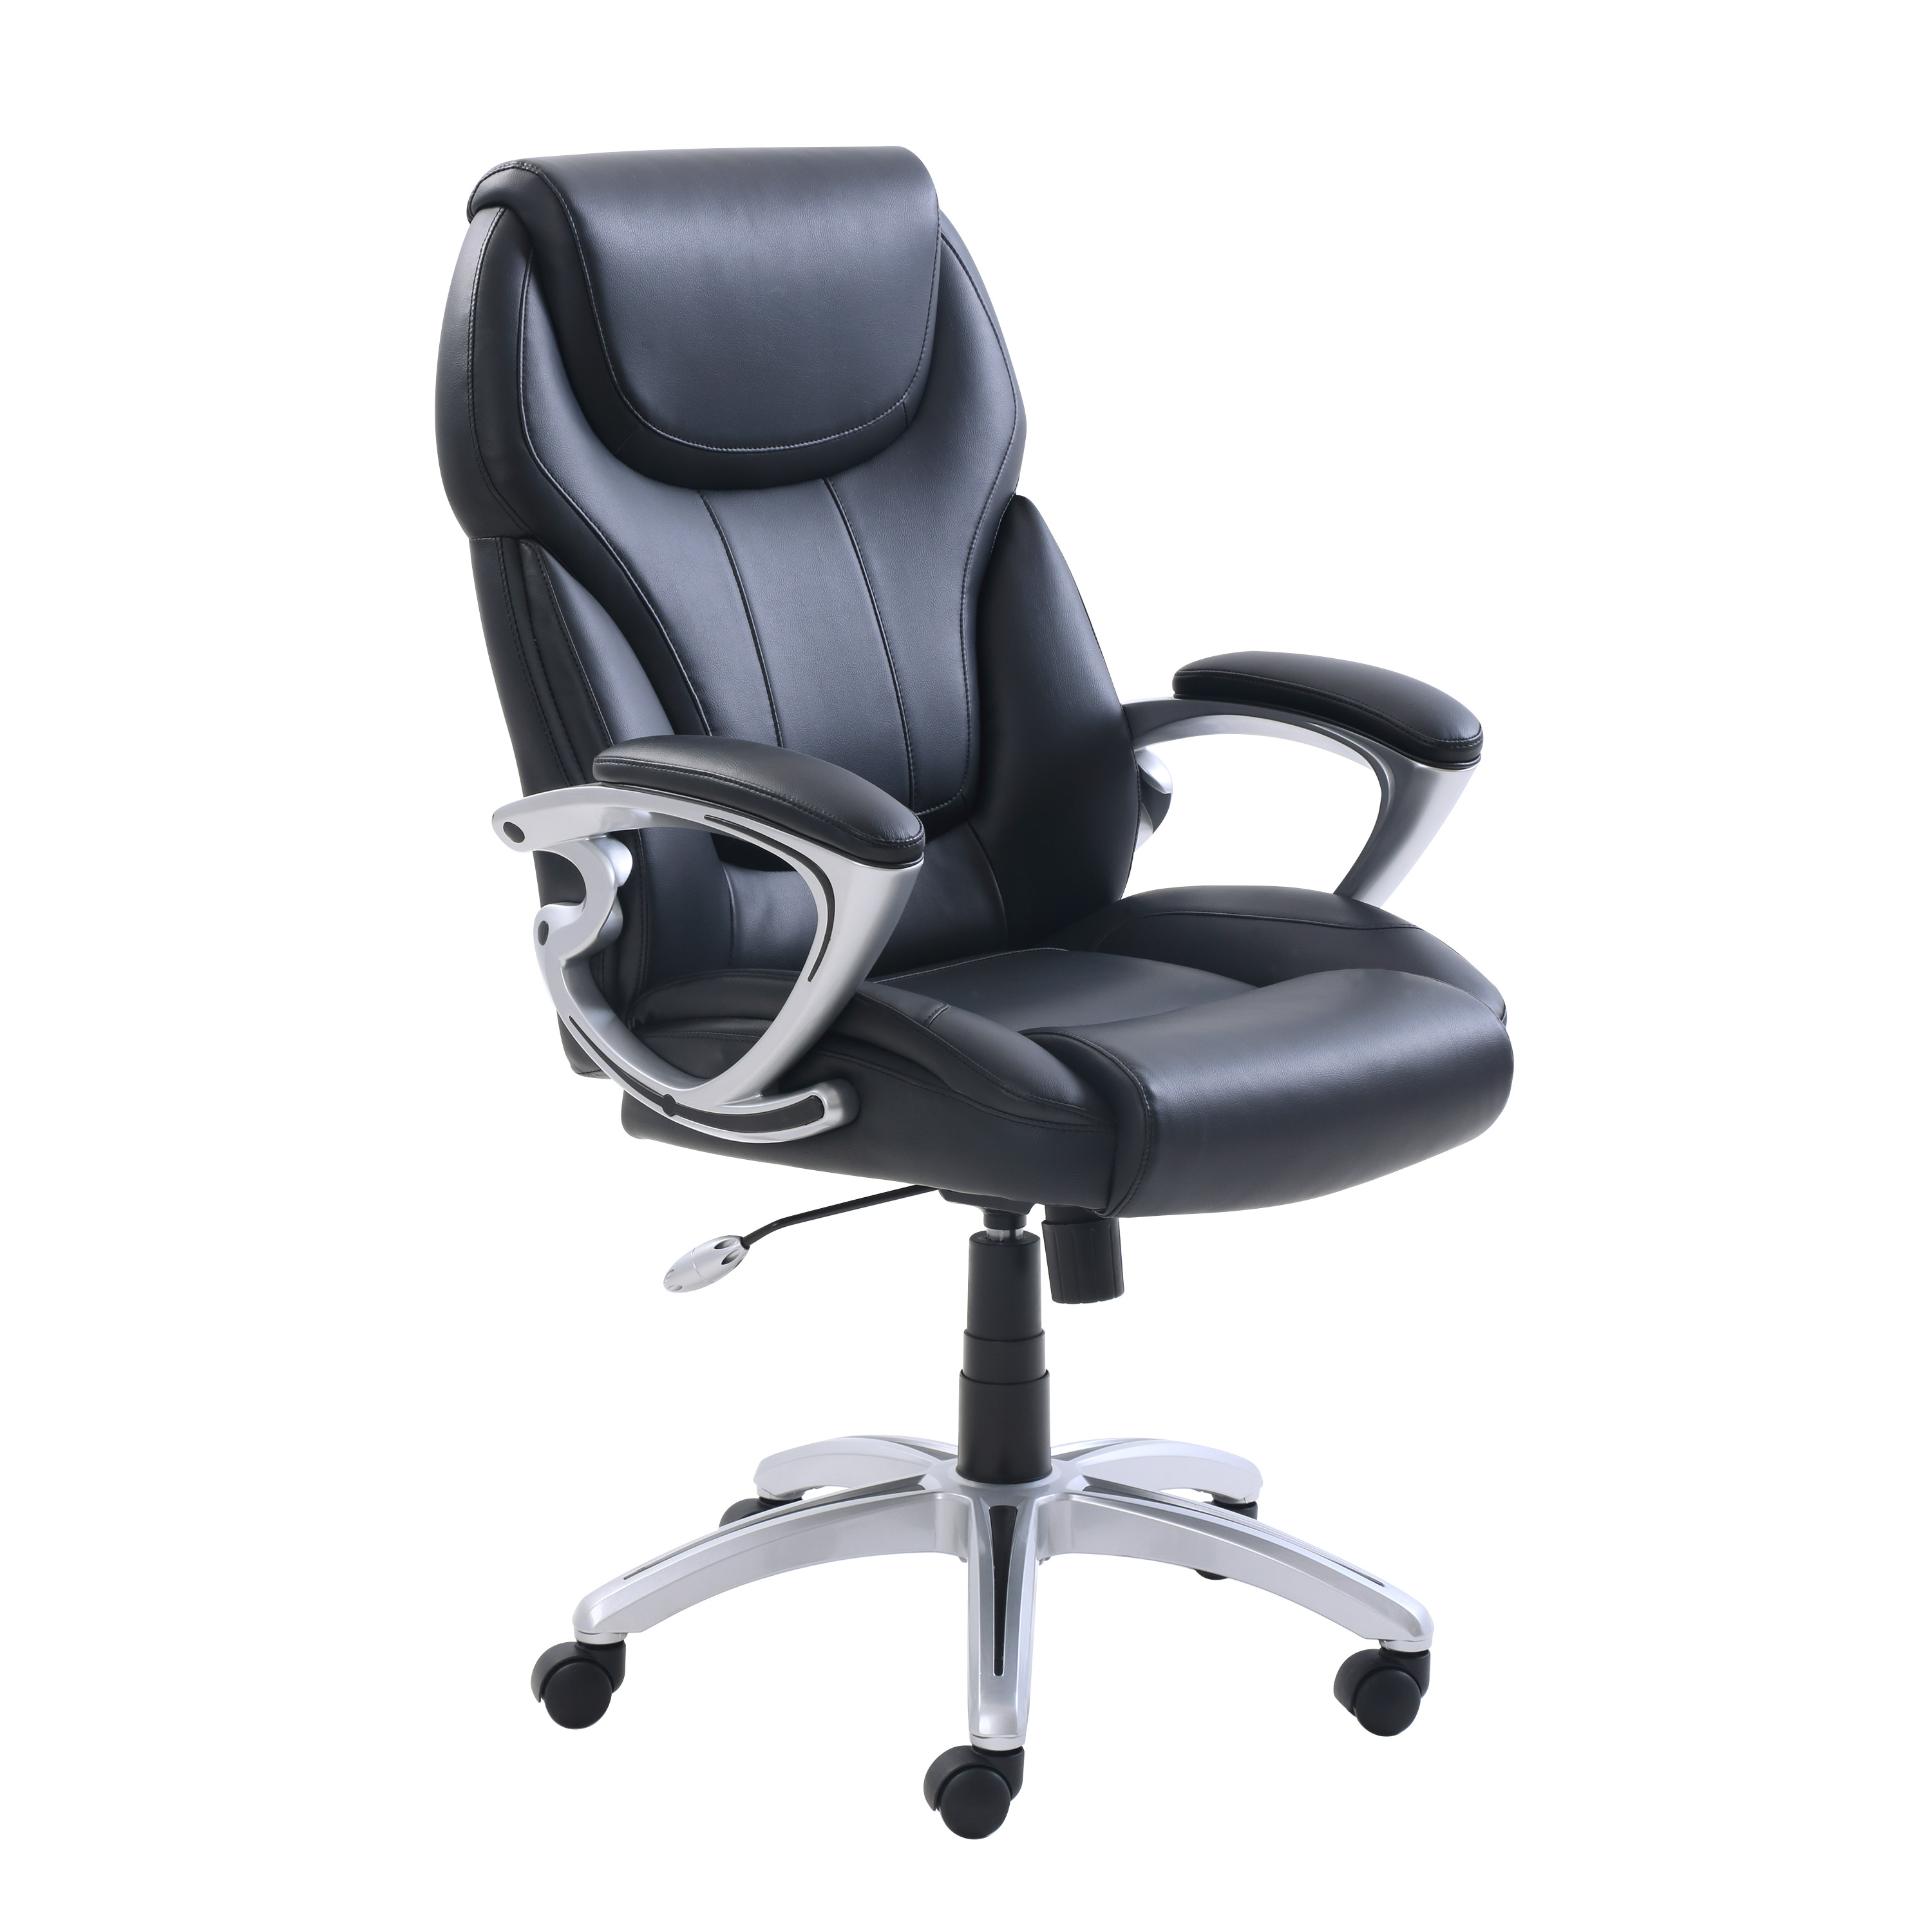 True Innovations Bonded Leather Managers Chair, Black Upholstery